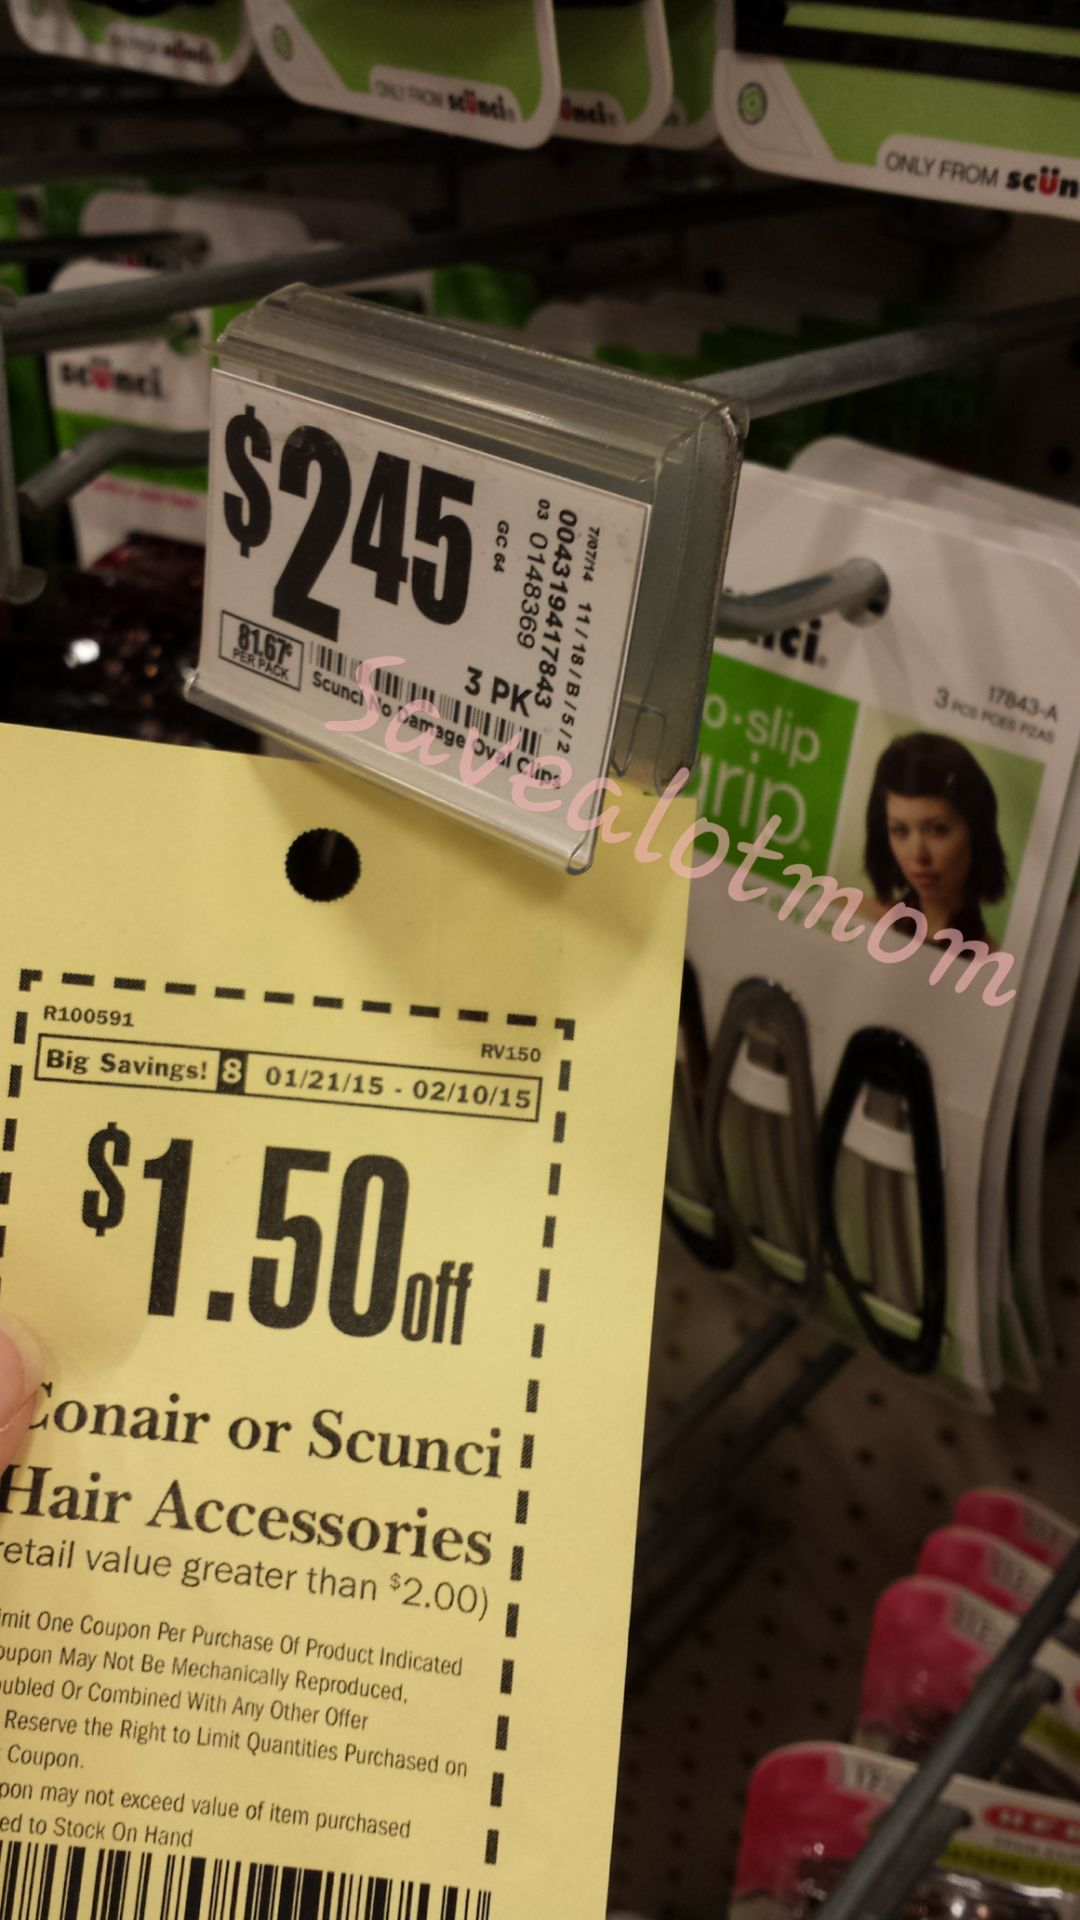 $.95 Scunci Hair Products